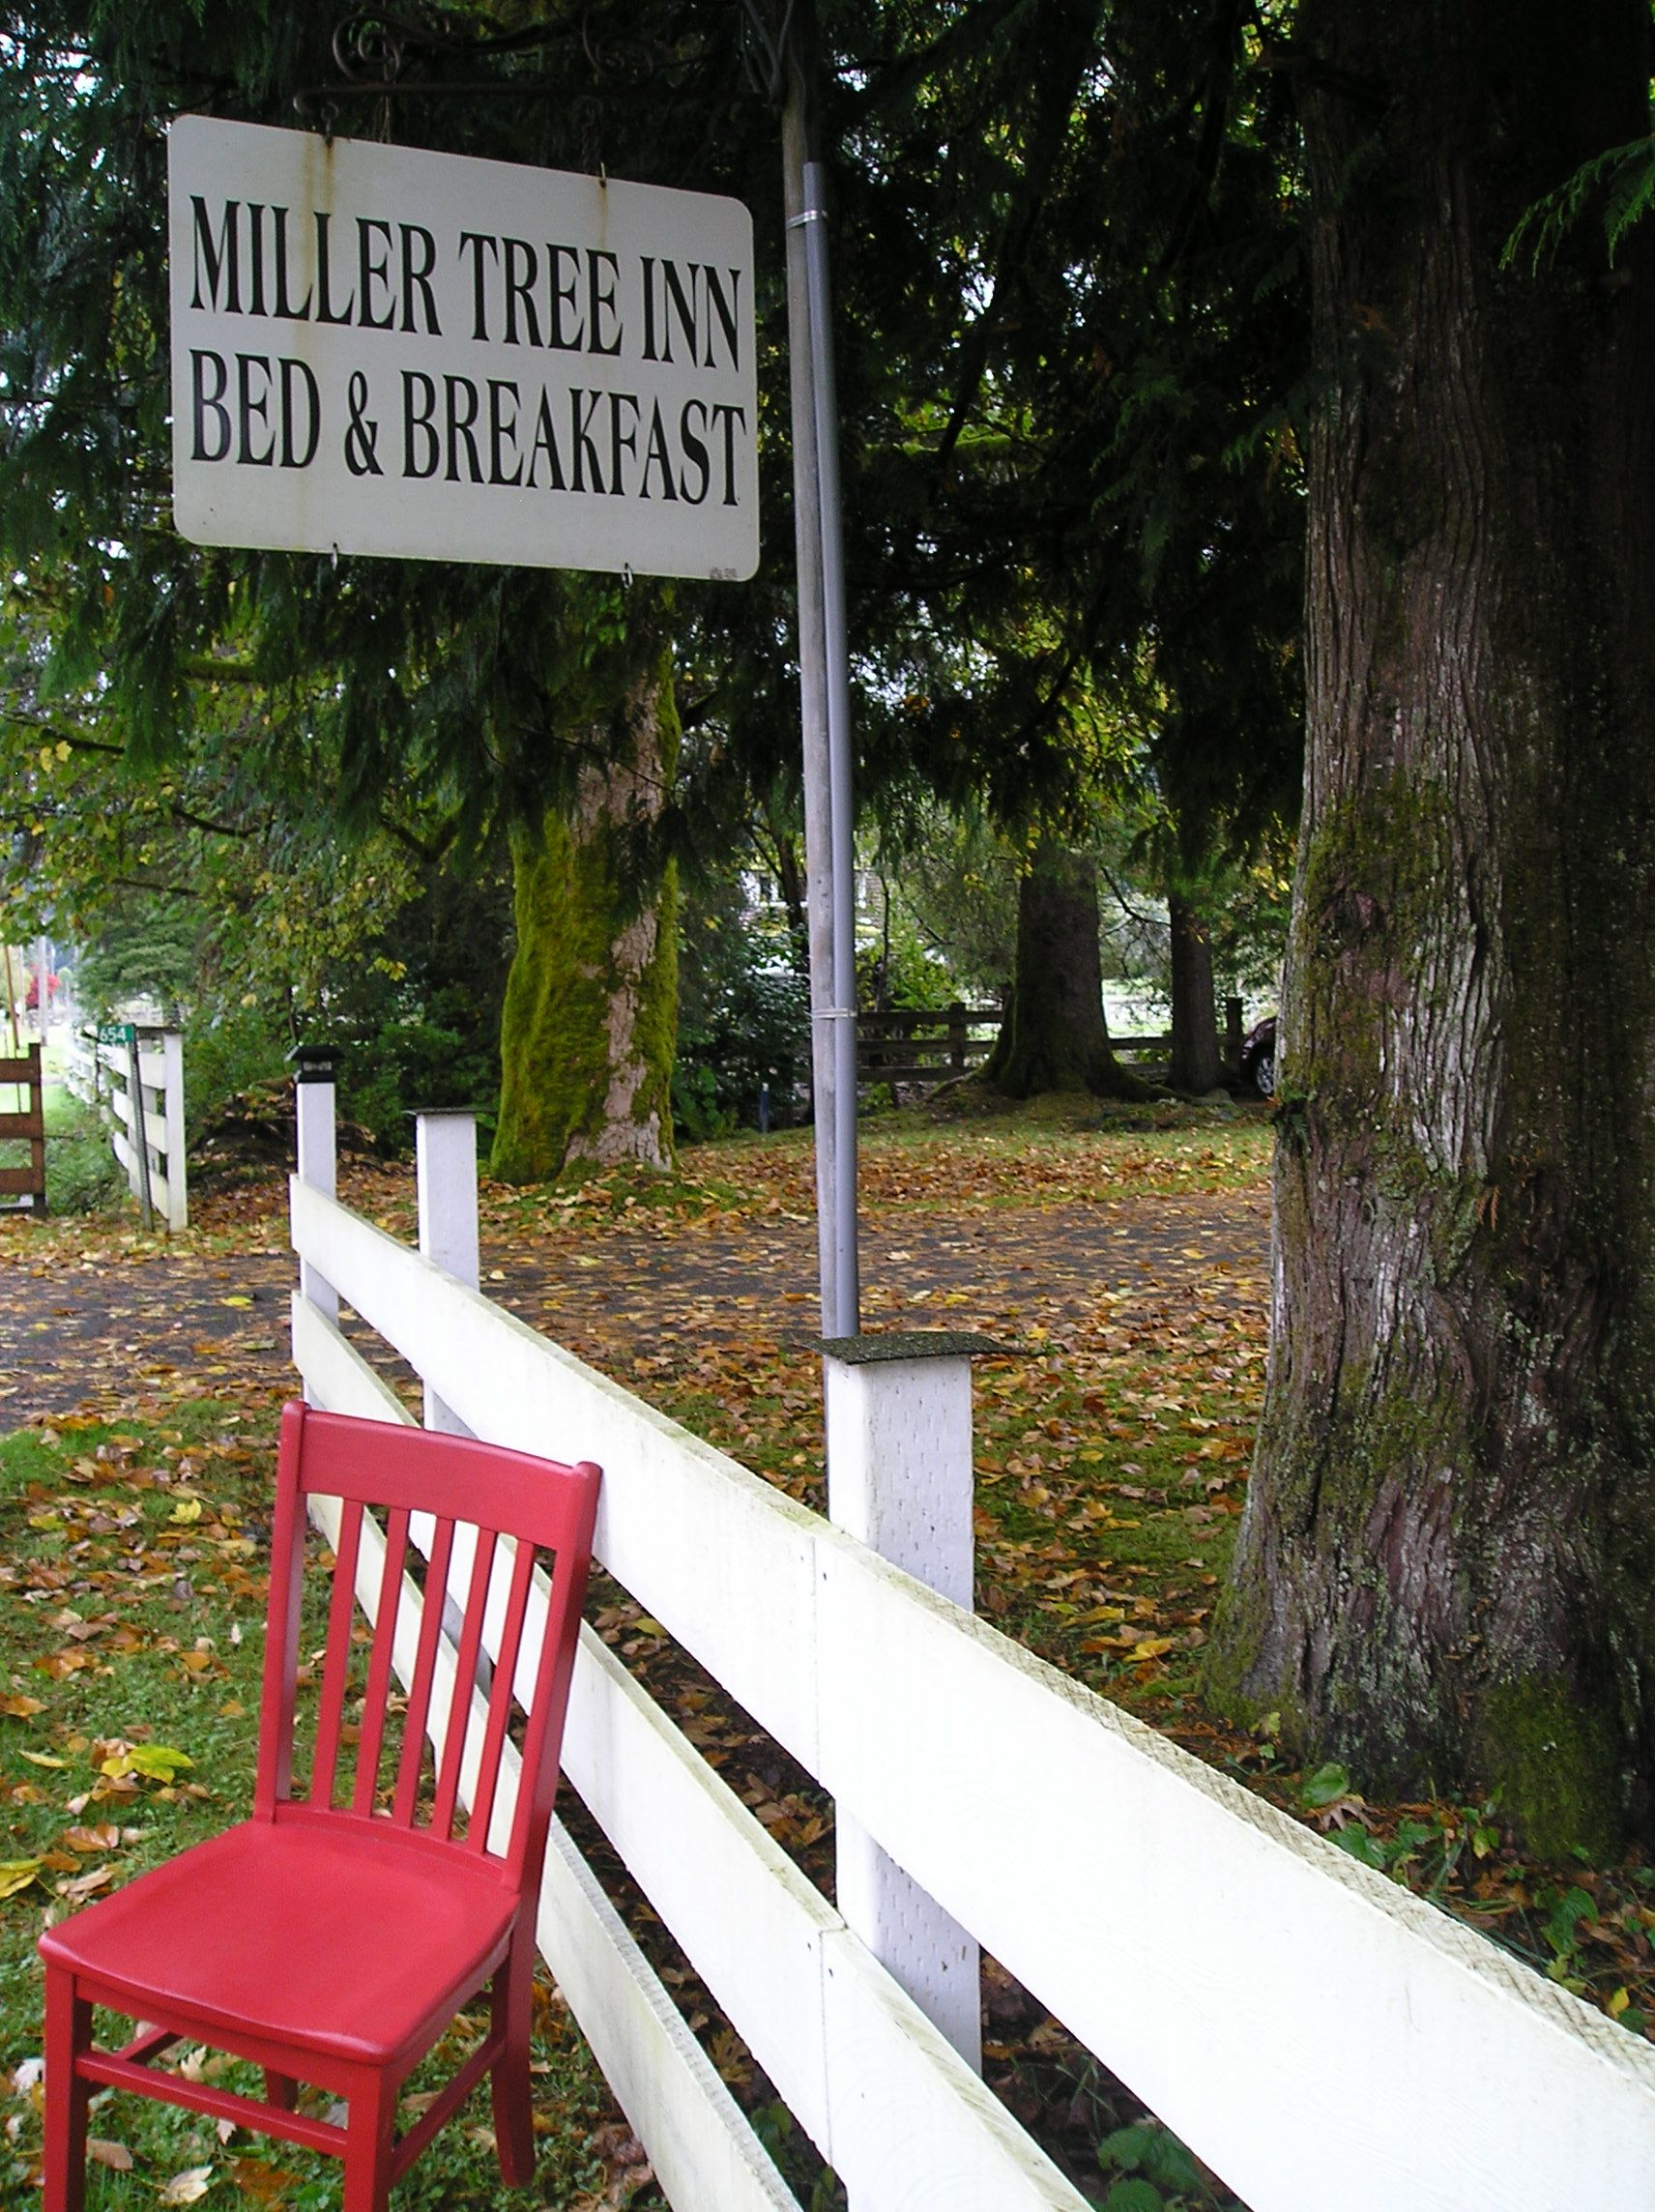 The Red Chair Travels visited the Miller Tree this October (2015). Follow RedChairTravels.com for more information!